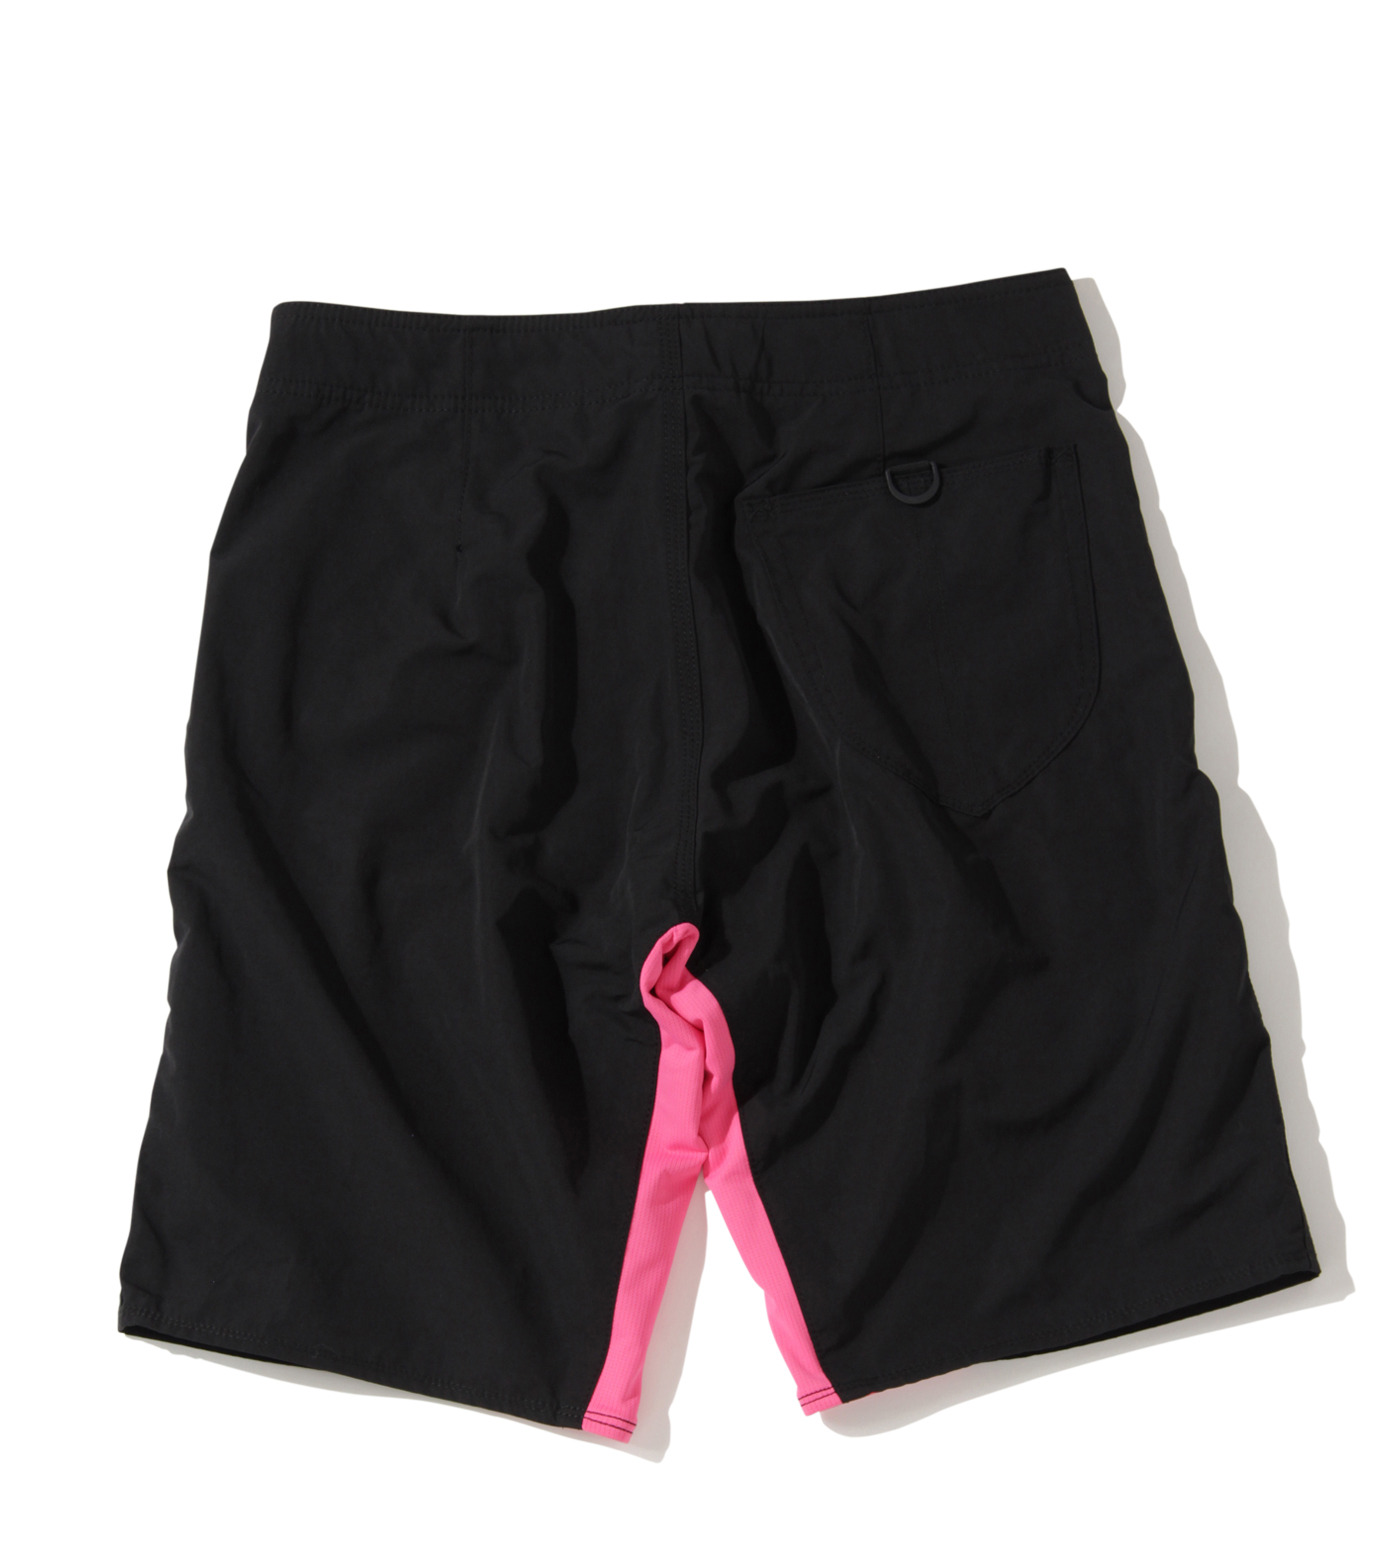 TWO TWO ONE(トゥートゥーワン)のSurf shorts long-PINK(SWIMWEAR/SWIMWEAR)-15N948002-72 拡大詳細画像2